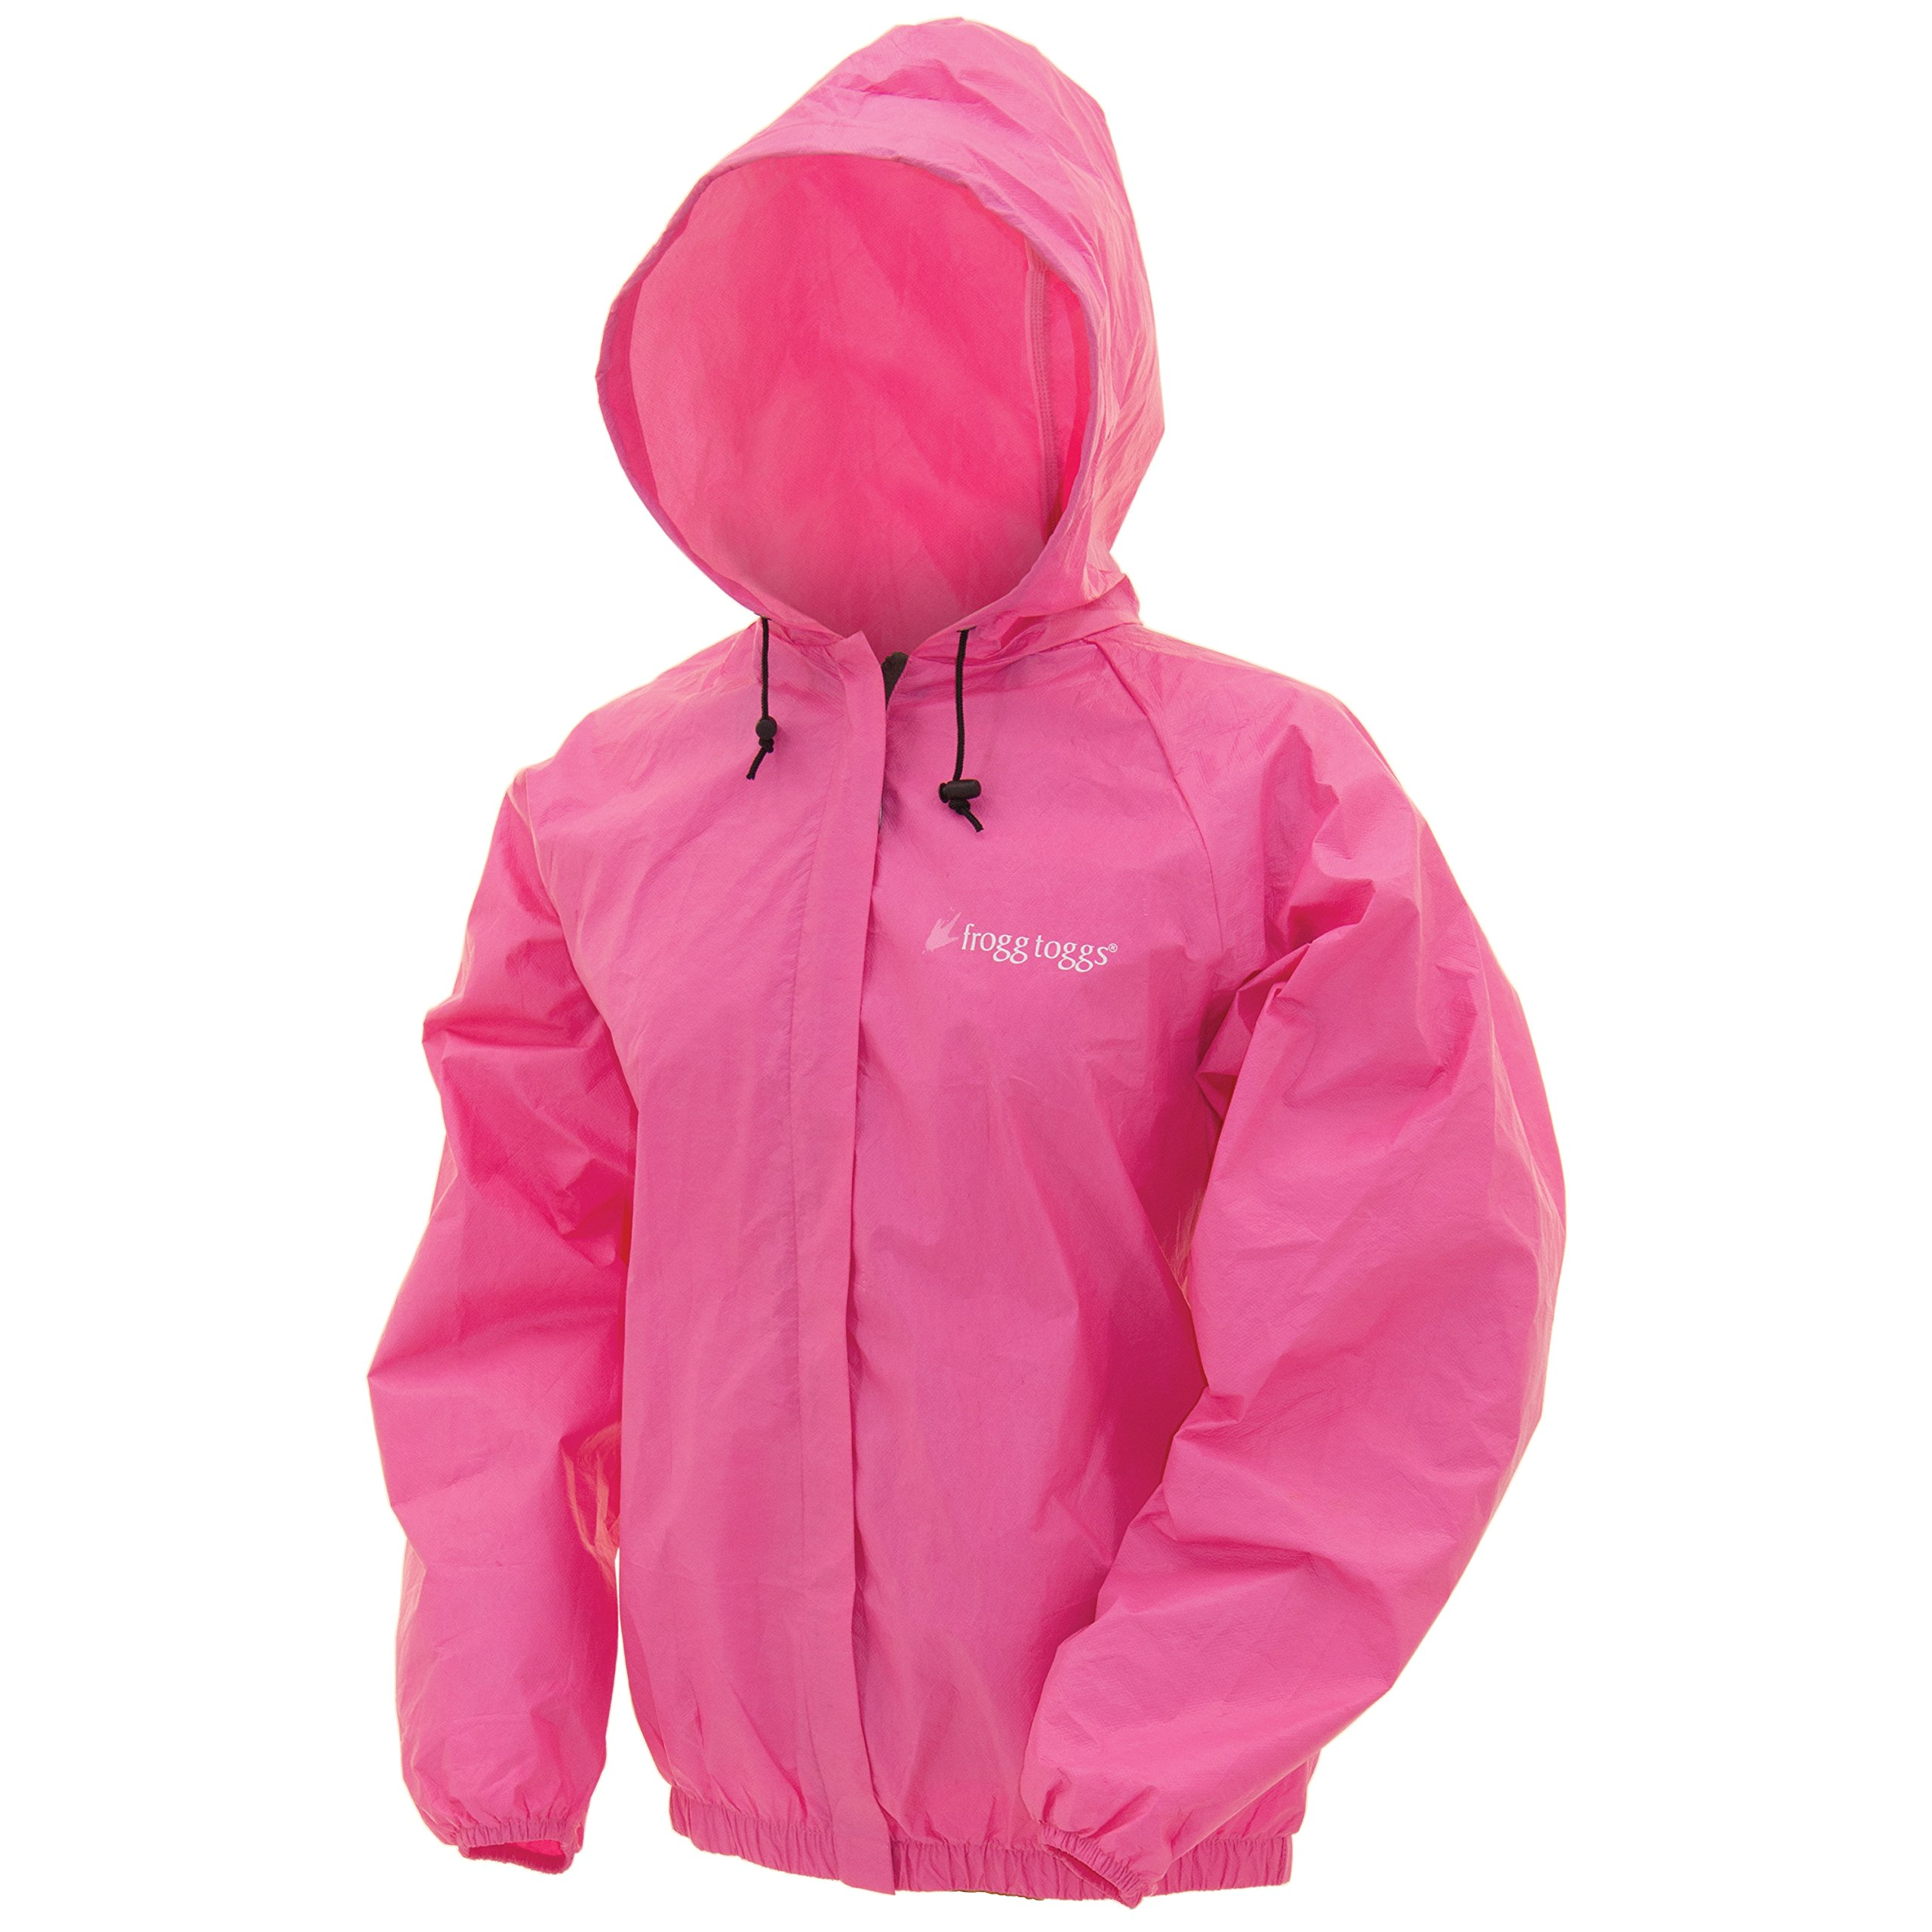 Frogg Toggs Women's Ultra-Lite 2 Jacket, Large, Pink